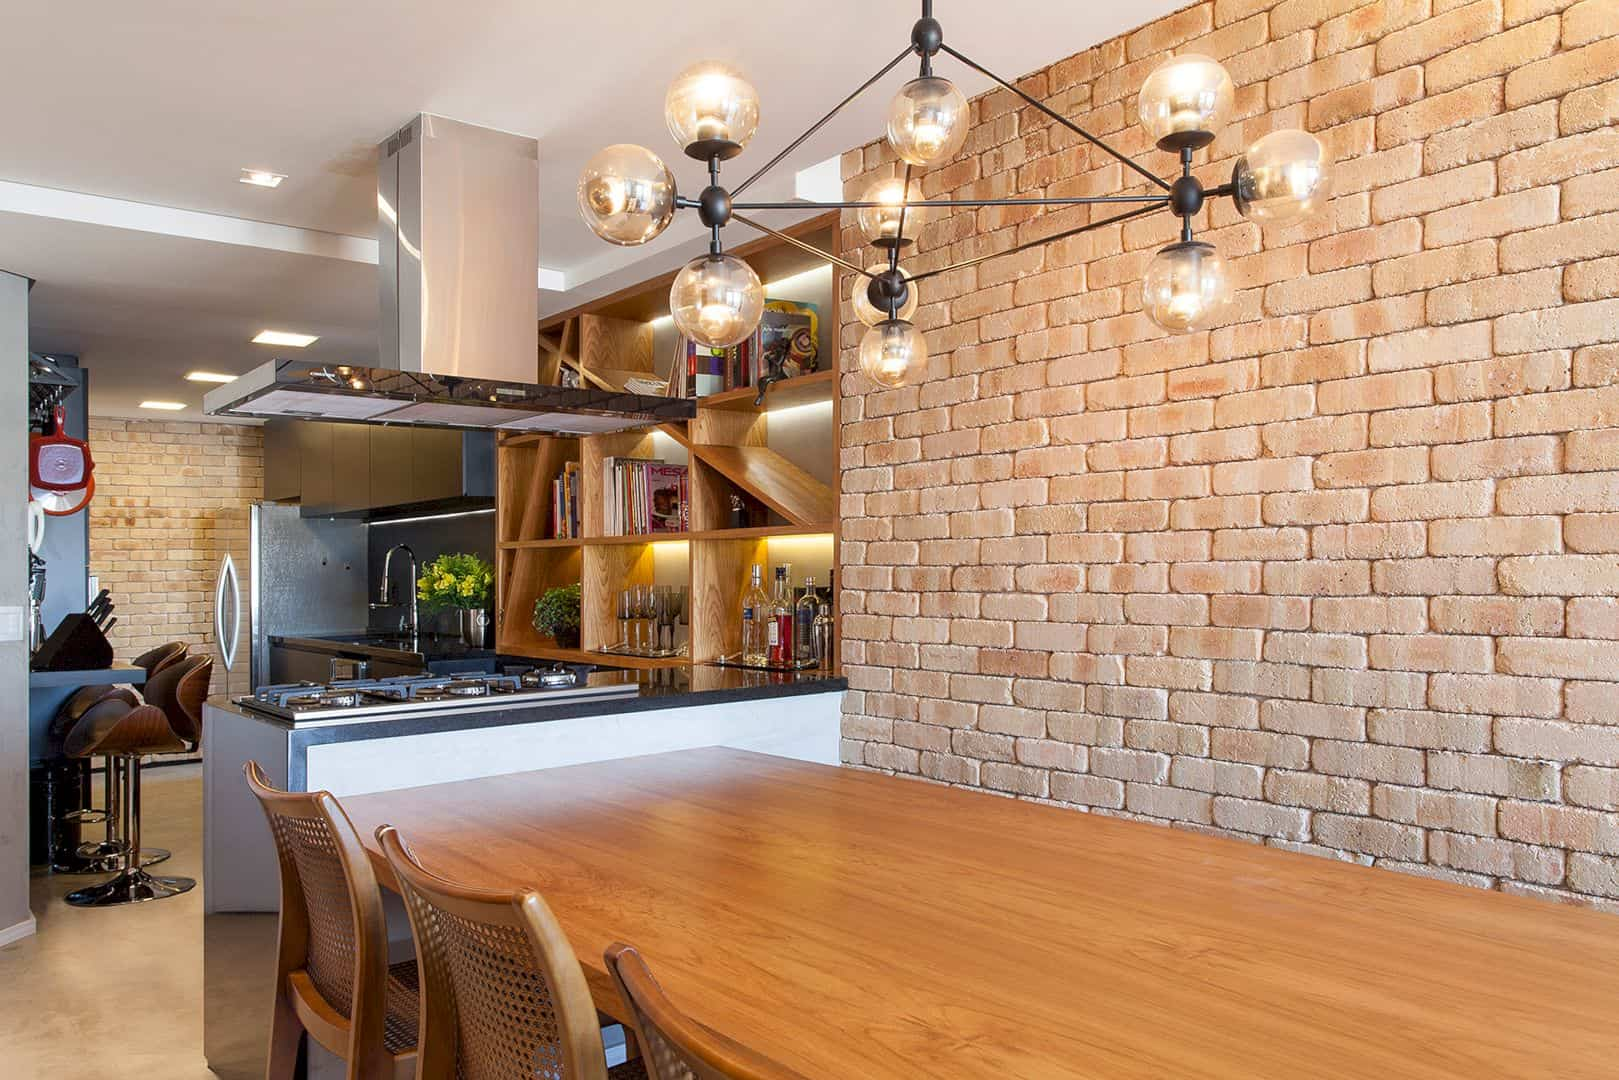 Tucuna Apartment: Brick and Wooden Walls in A Modern Apartment with Black Kitchen